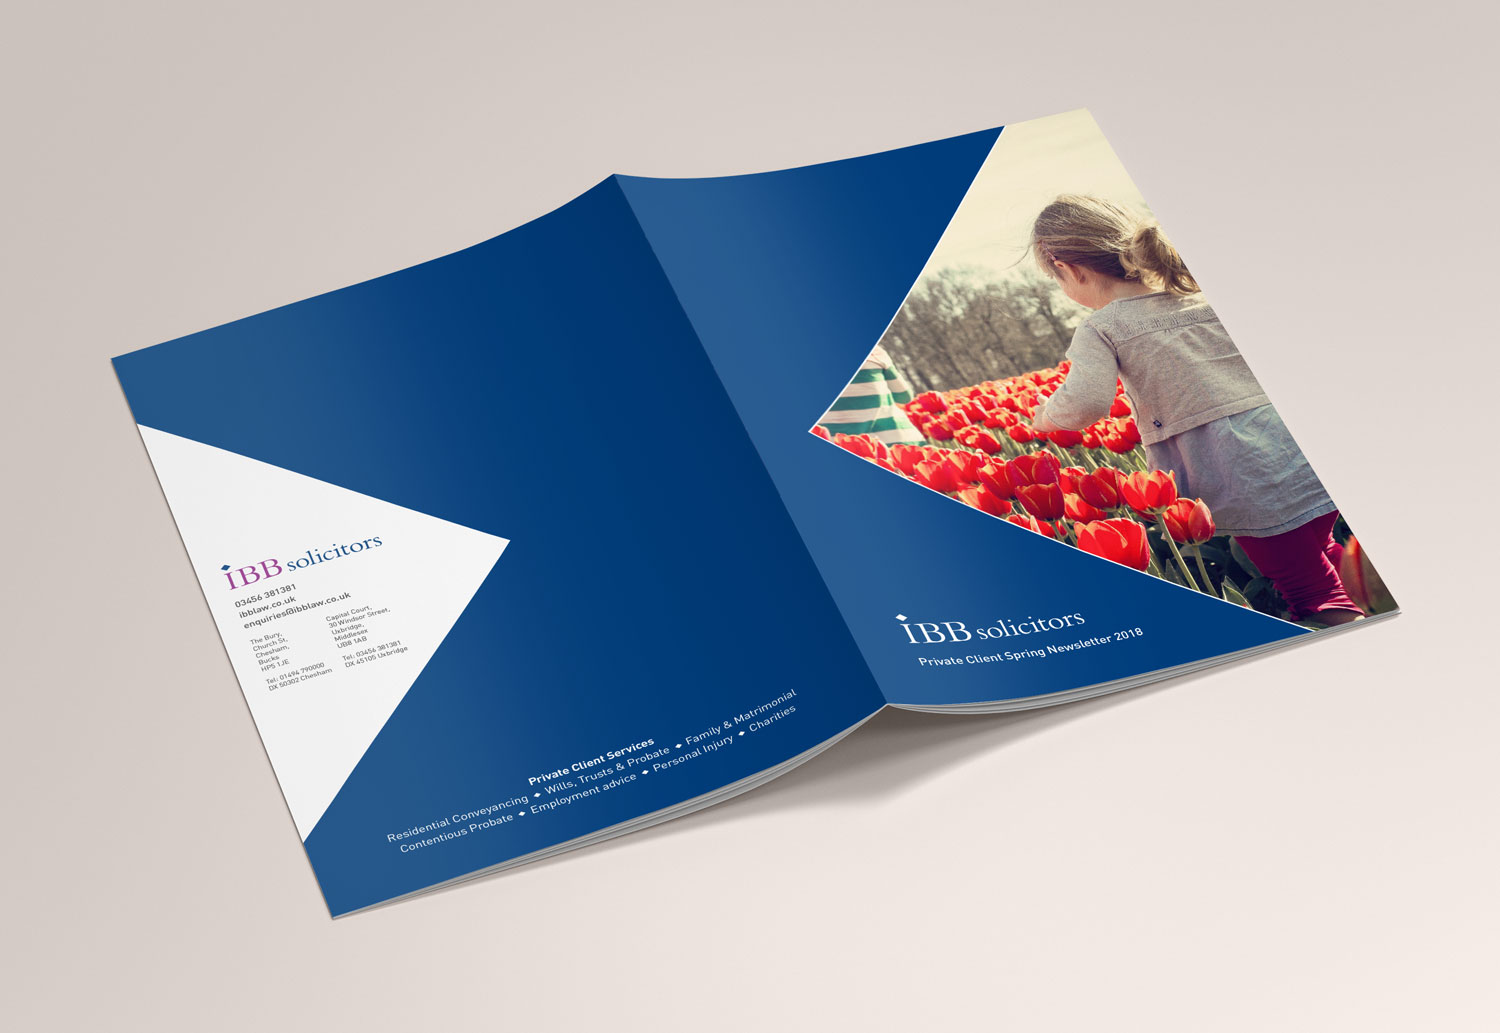 IBB Solicitors Spring Newsletter cover wrap layout